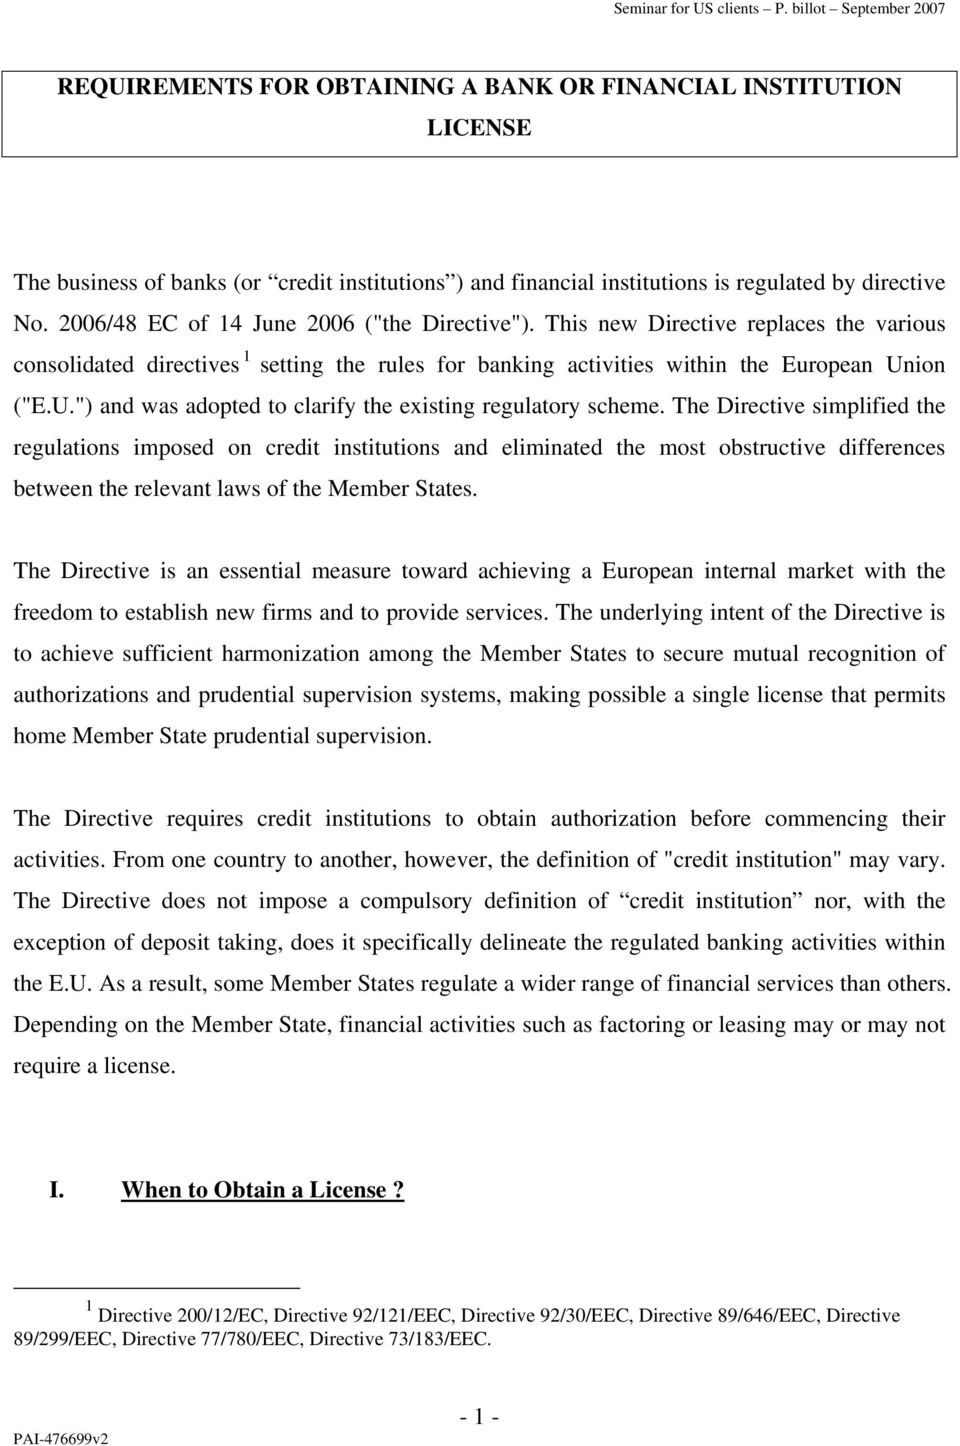 "ion (""E.U."") and was adopted to clarify the existing regulatory scheme."